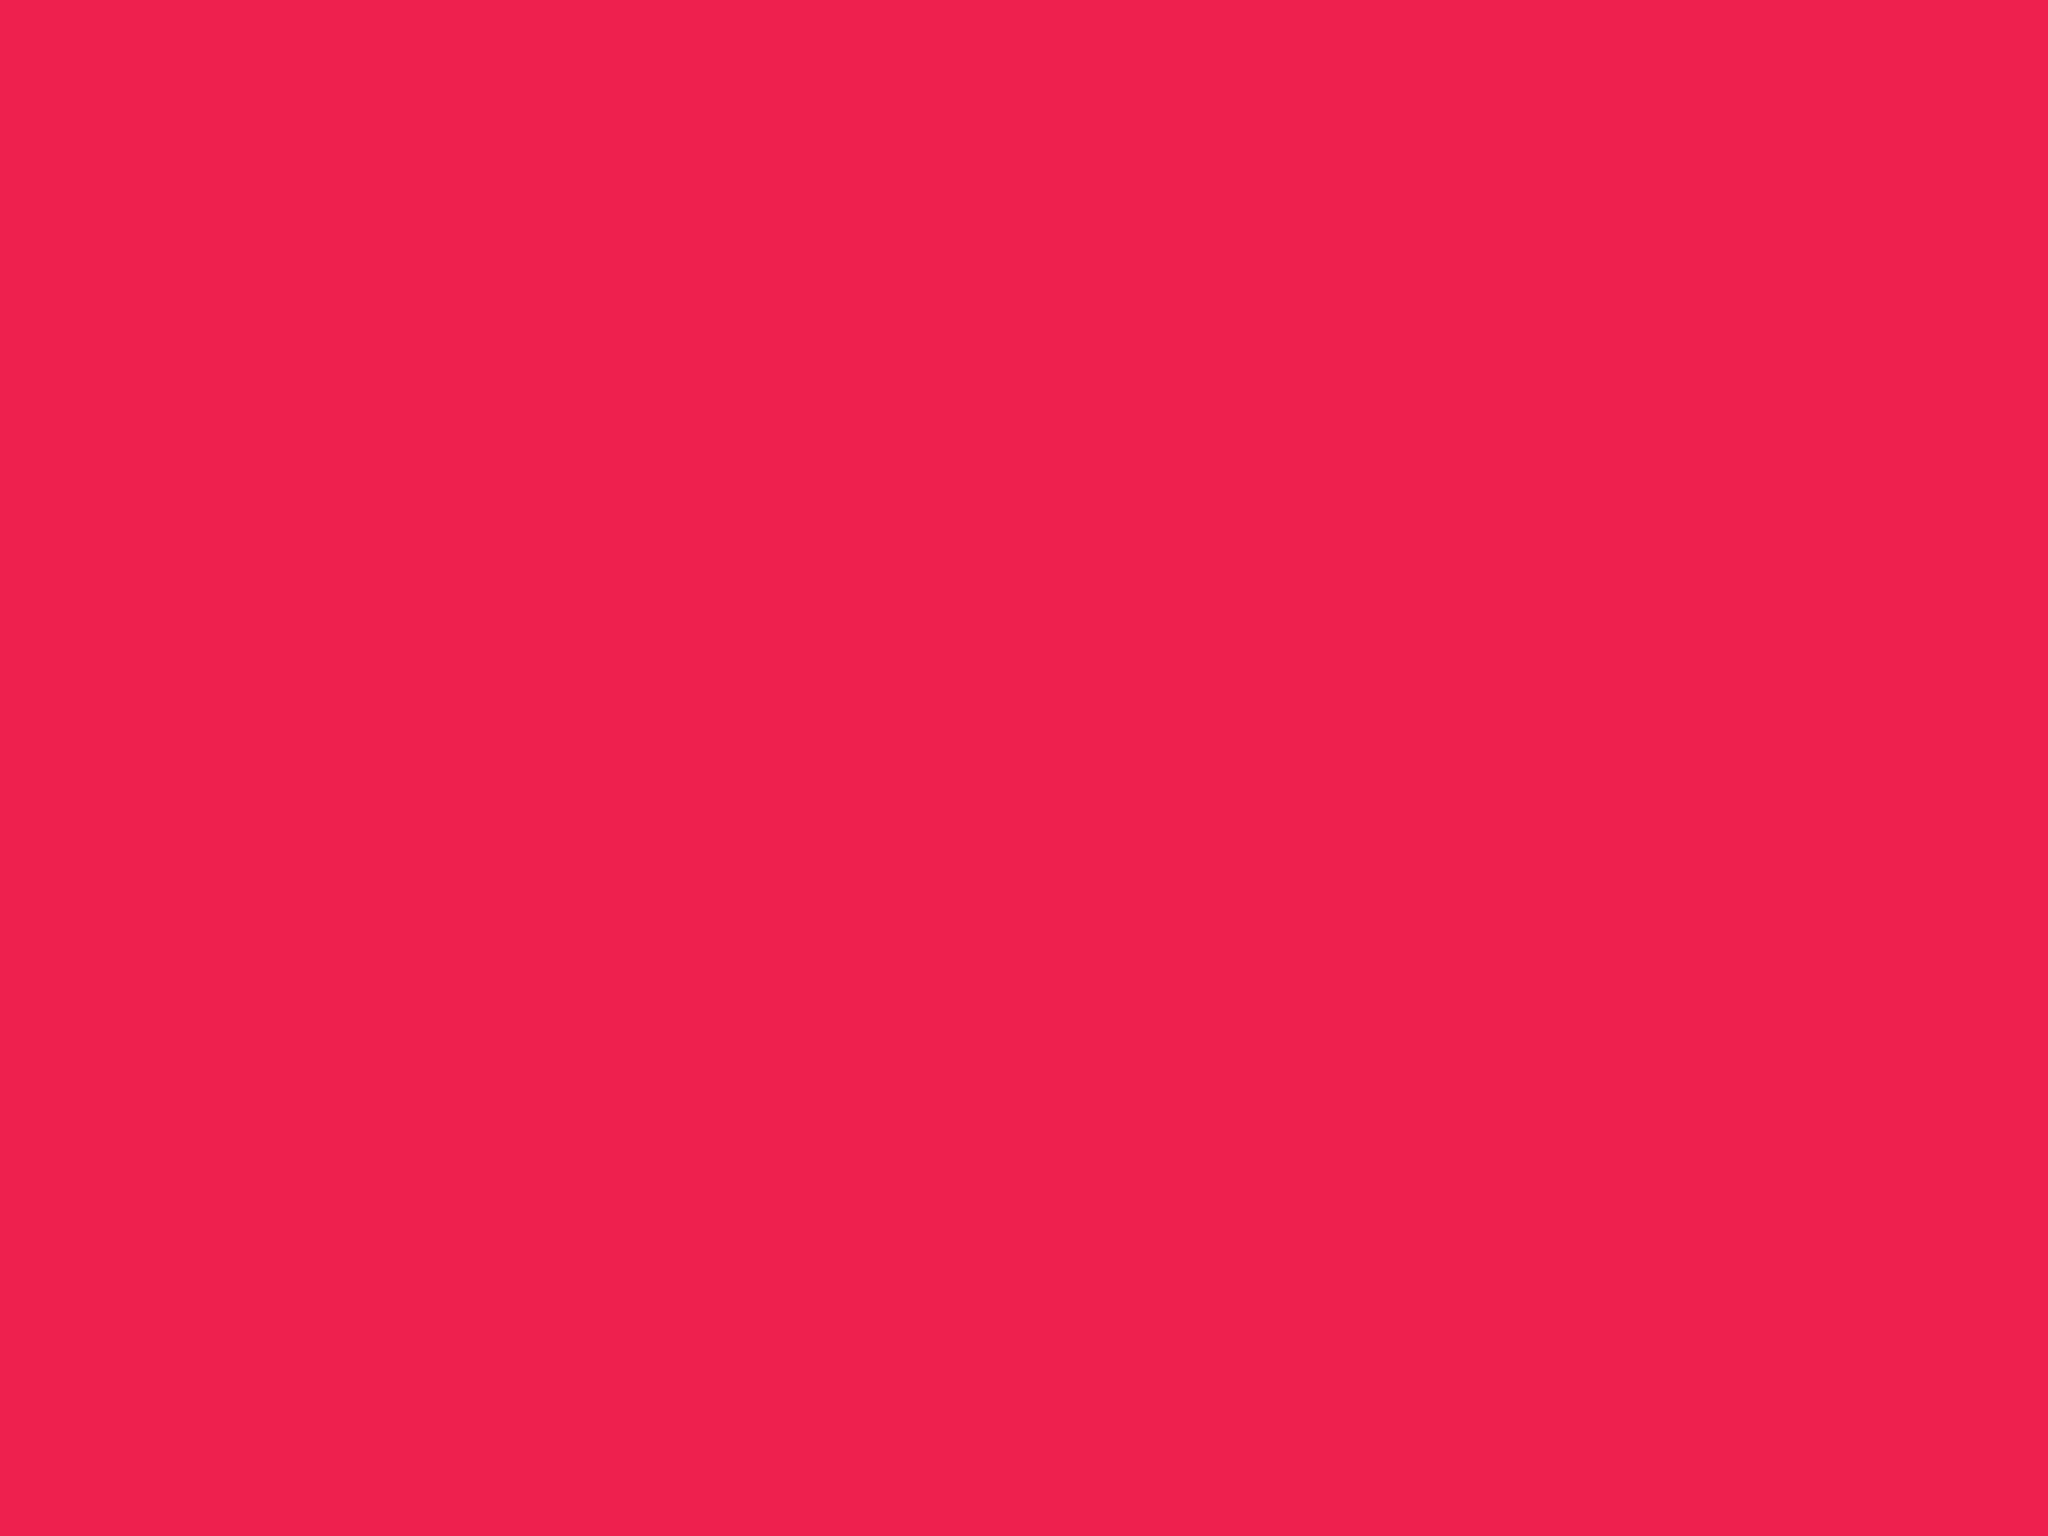 2048x1536 Red Crayola Solid Color Background